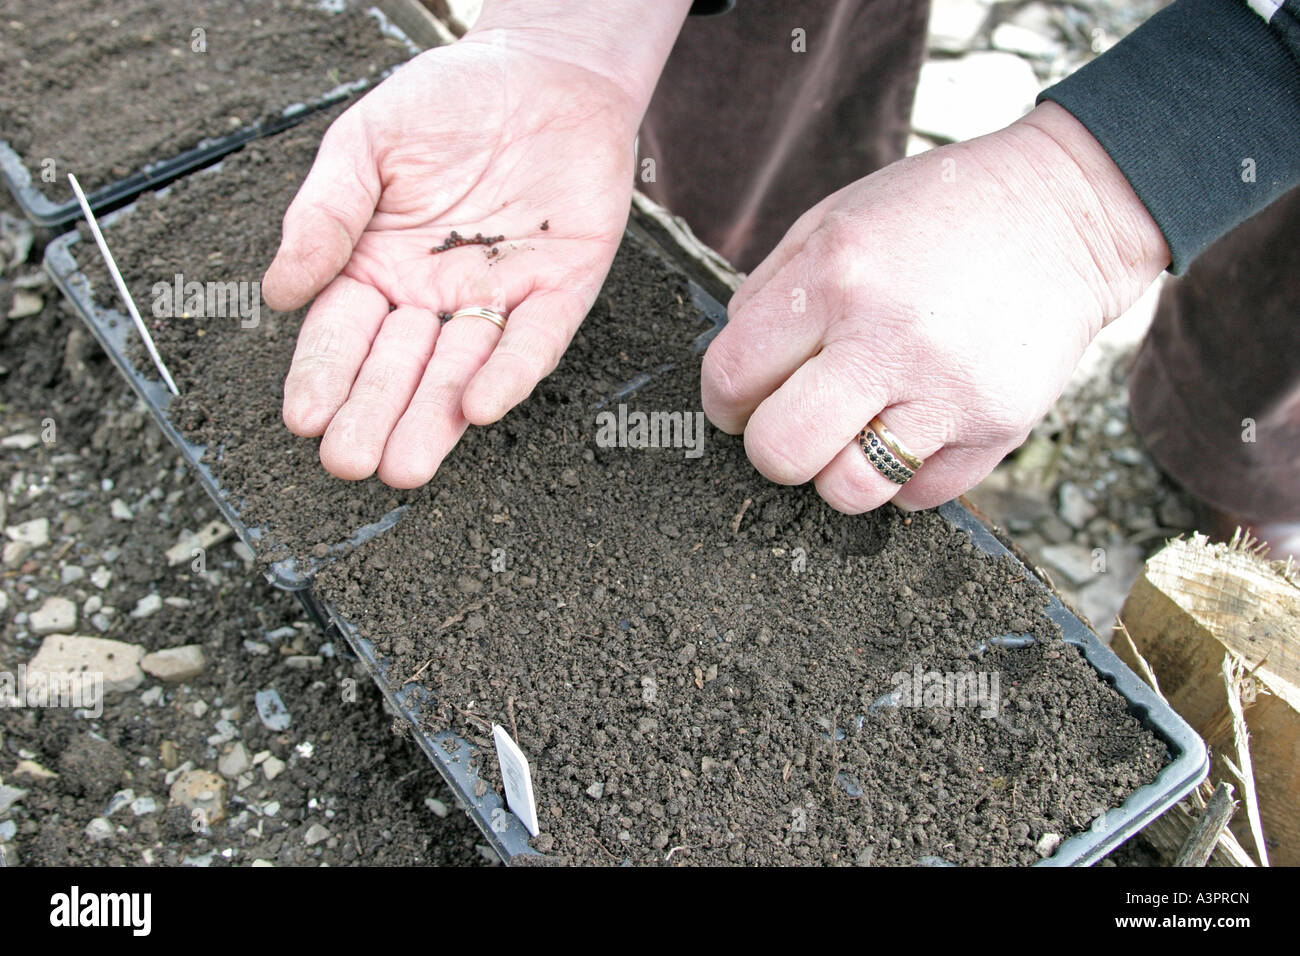 SOWING CABBAGE SEED PRIMO IN MODULES - Stock Image